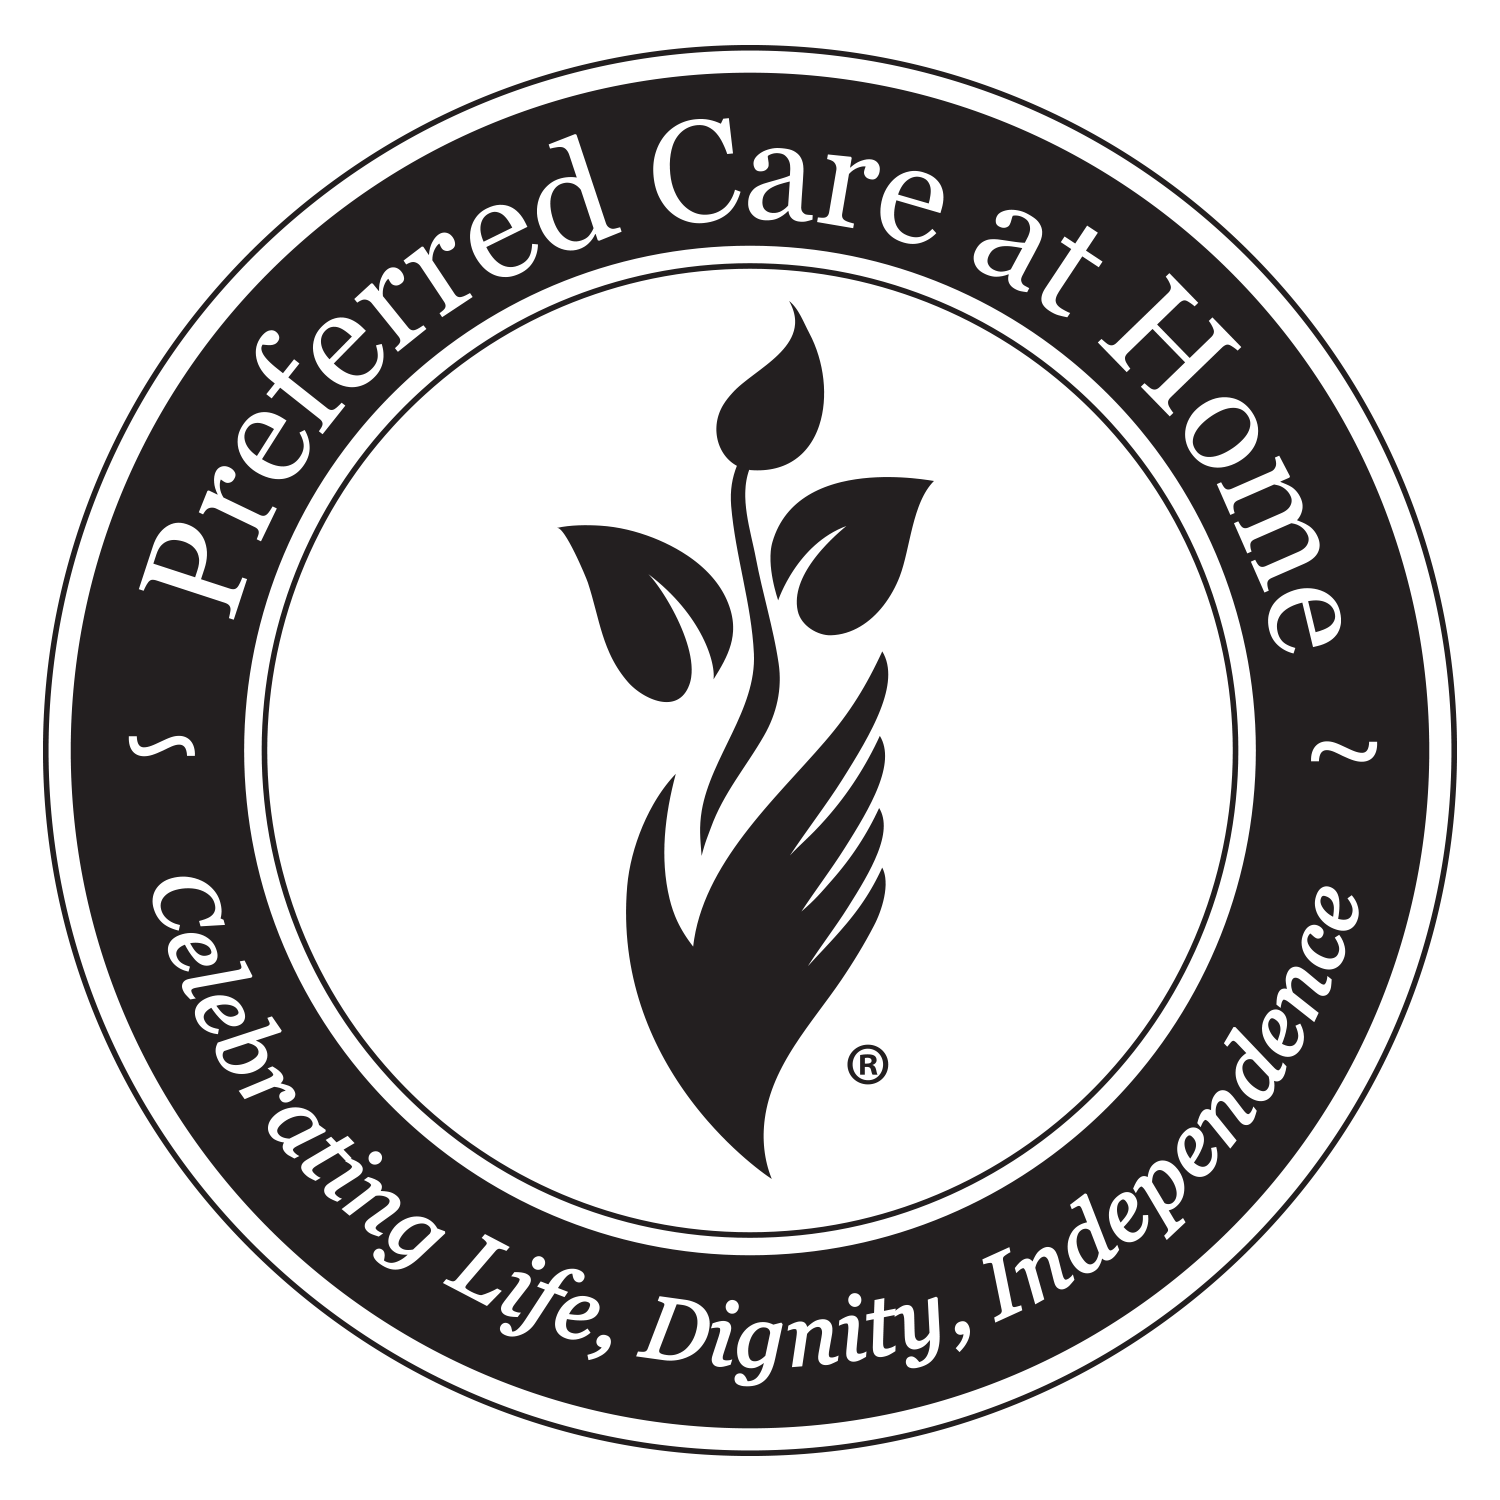 Preferred Care at Home of Cape Coral & Fort Myers image 2